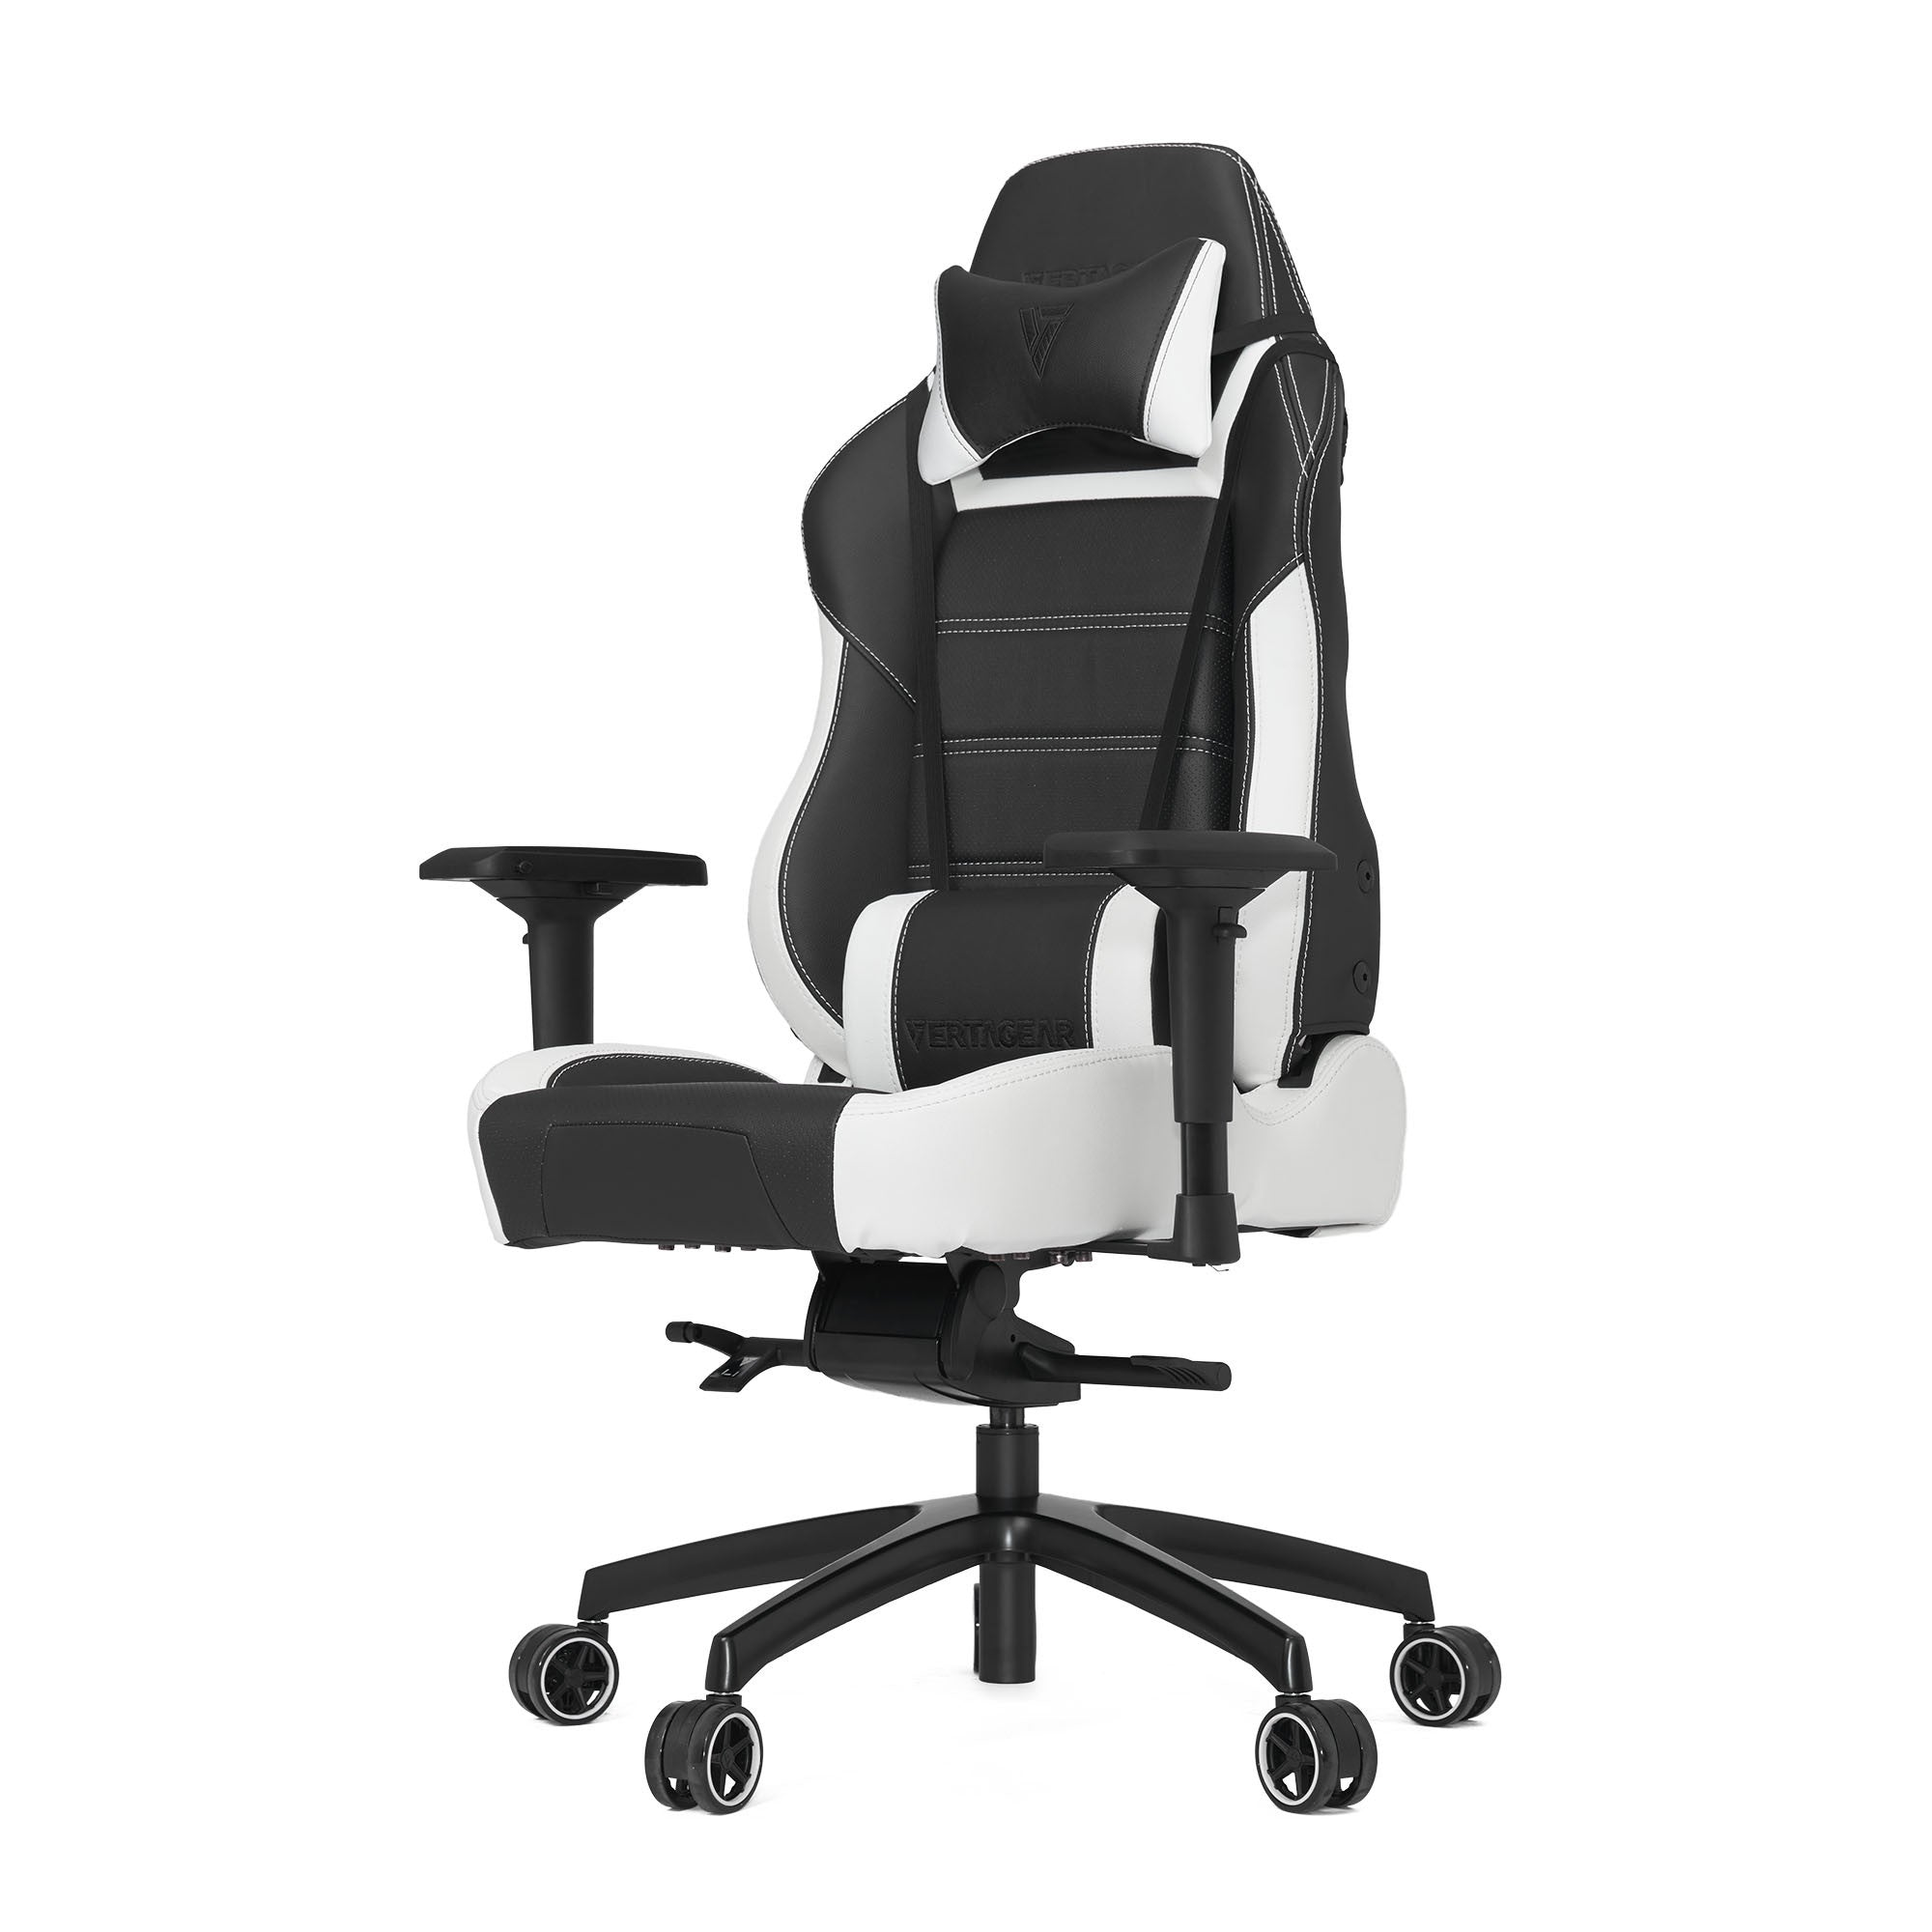 Vertagear P-Line PL6000 Racing Series Ergonomic Office Chair Black on ergonomic computer chair, leather chair white, ergonomic chairs for home, stools chair white, ergonomic chairs with lumbar support, office desk white, swivel chair white, rocking chair white, office furniture white, grand high back chair white, ergonomic task chair white, home office white, conference table white, ergonomic chairs for manufacturing, desk chair white,